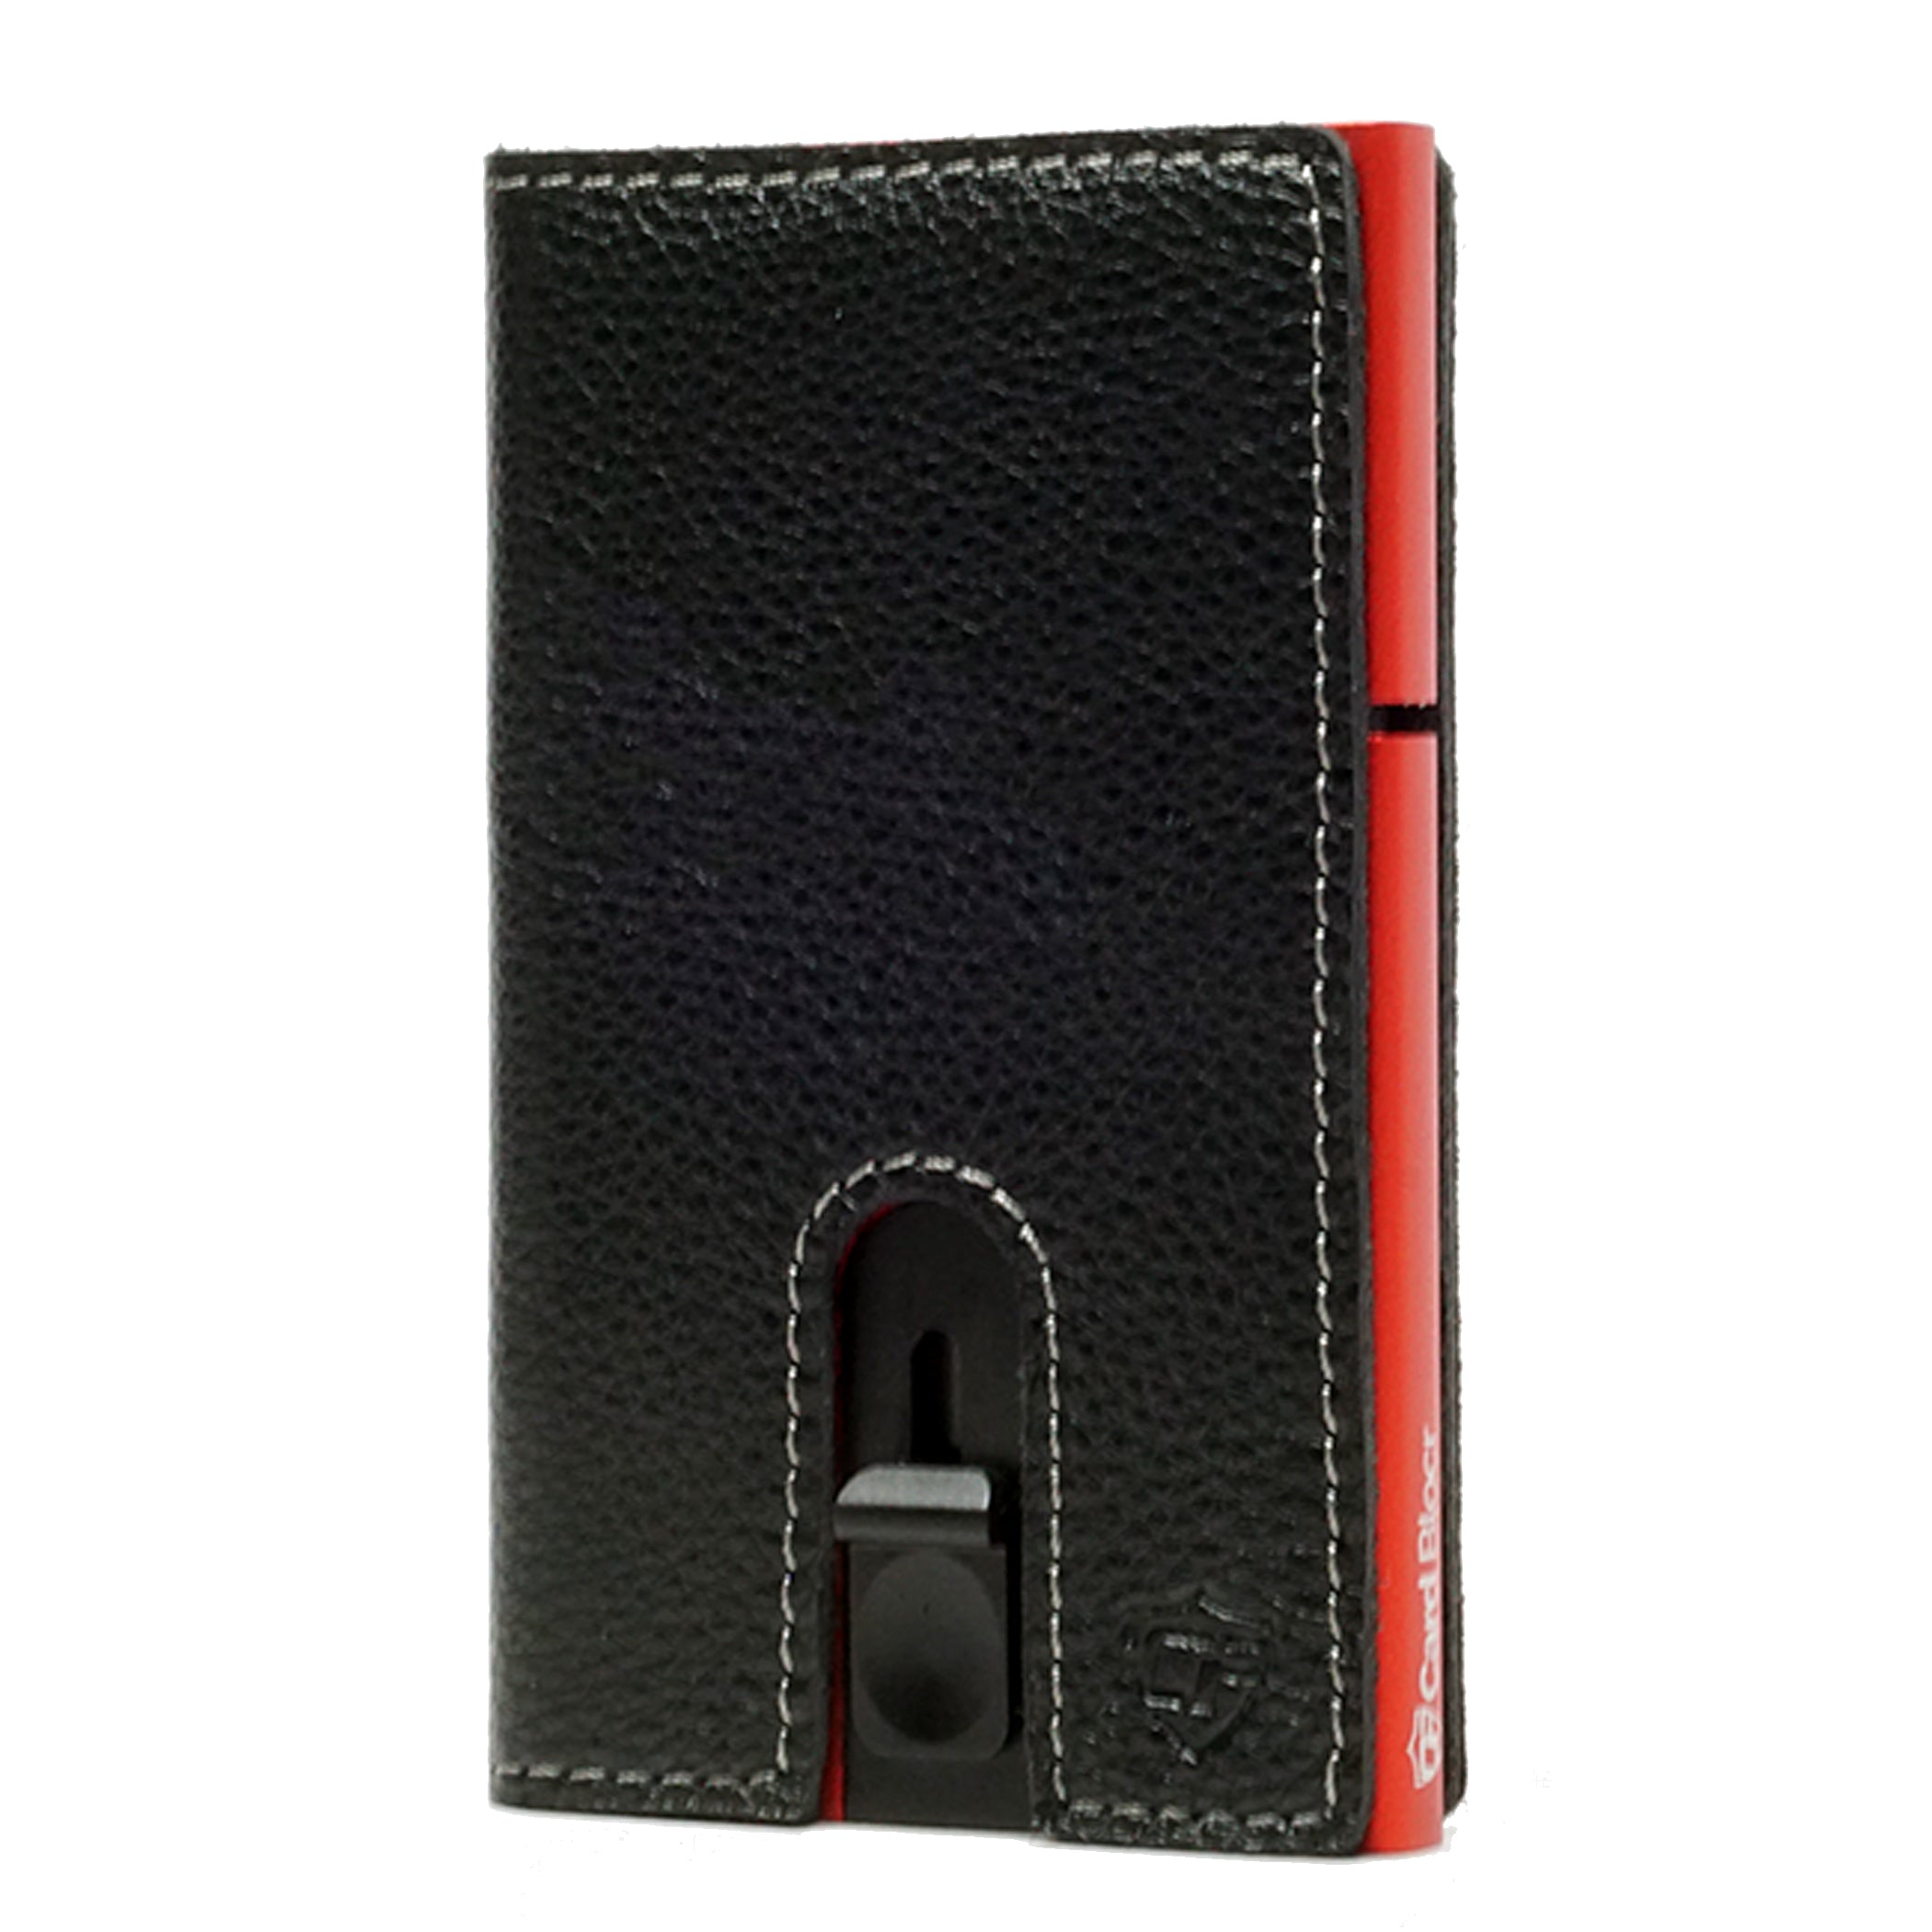 Card Blocr Credit Card Holder in Red Wrapped in Black Leather | RFID Wallet No Cards